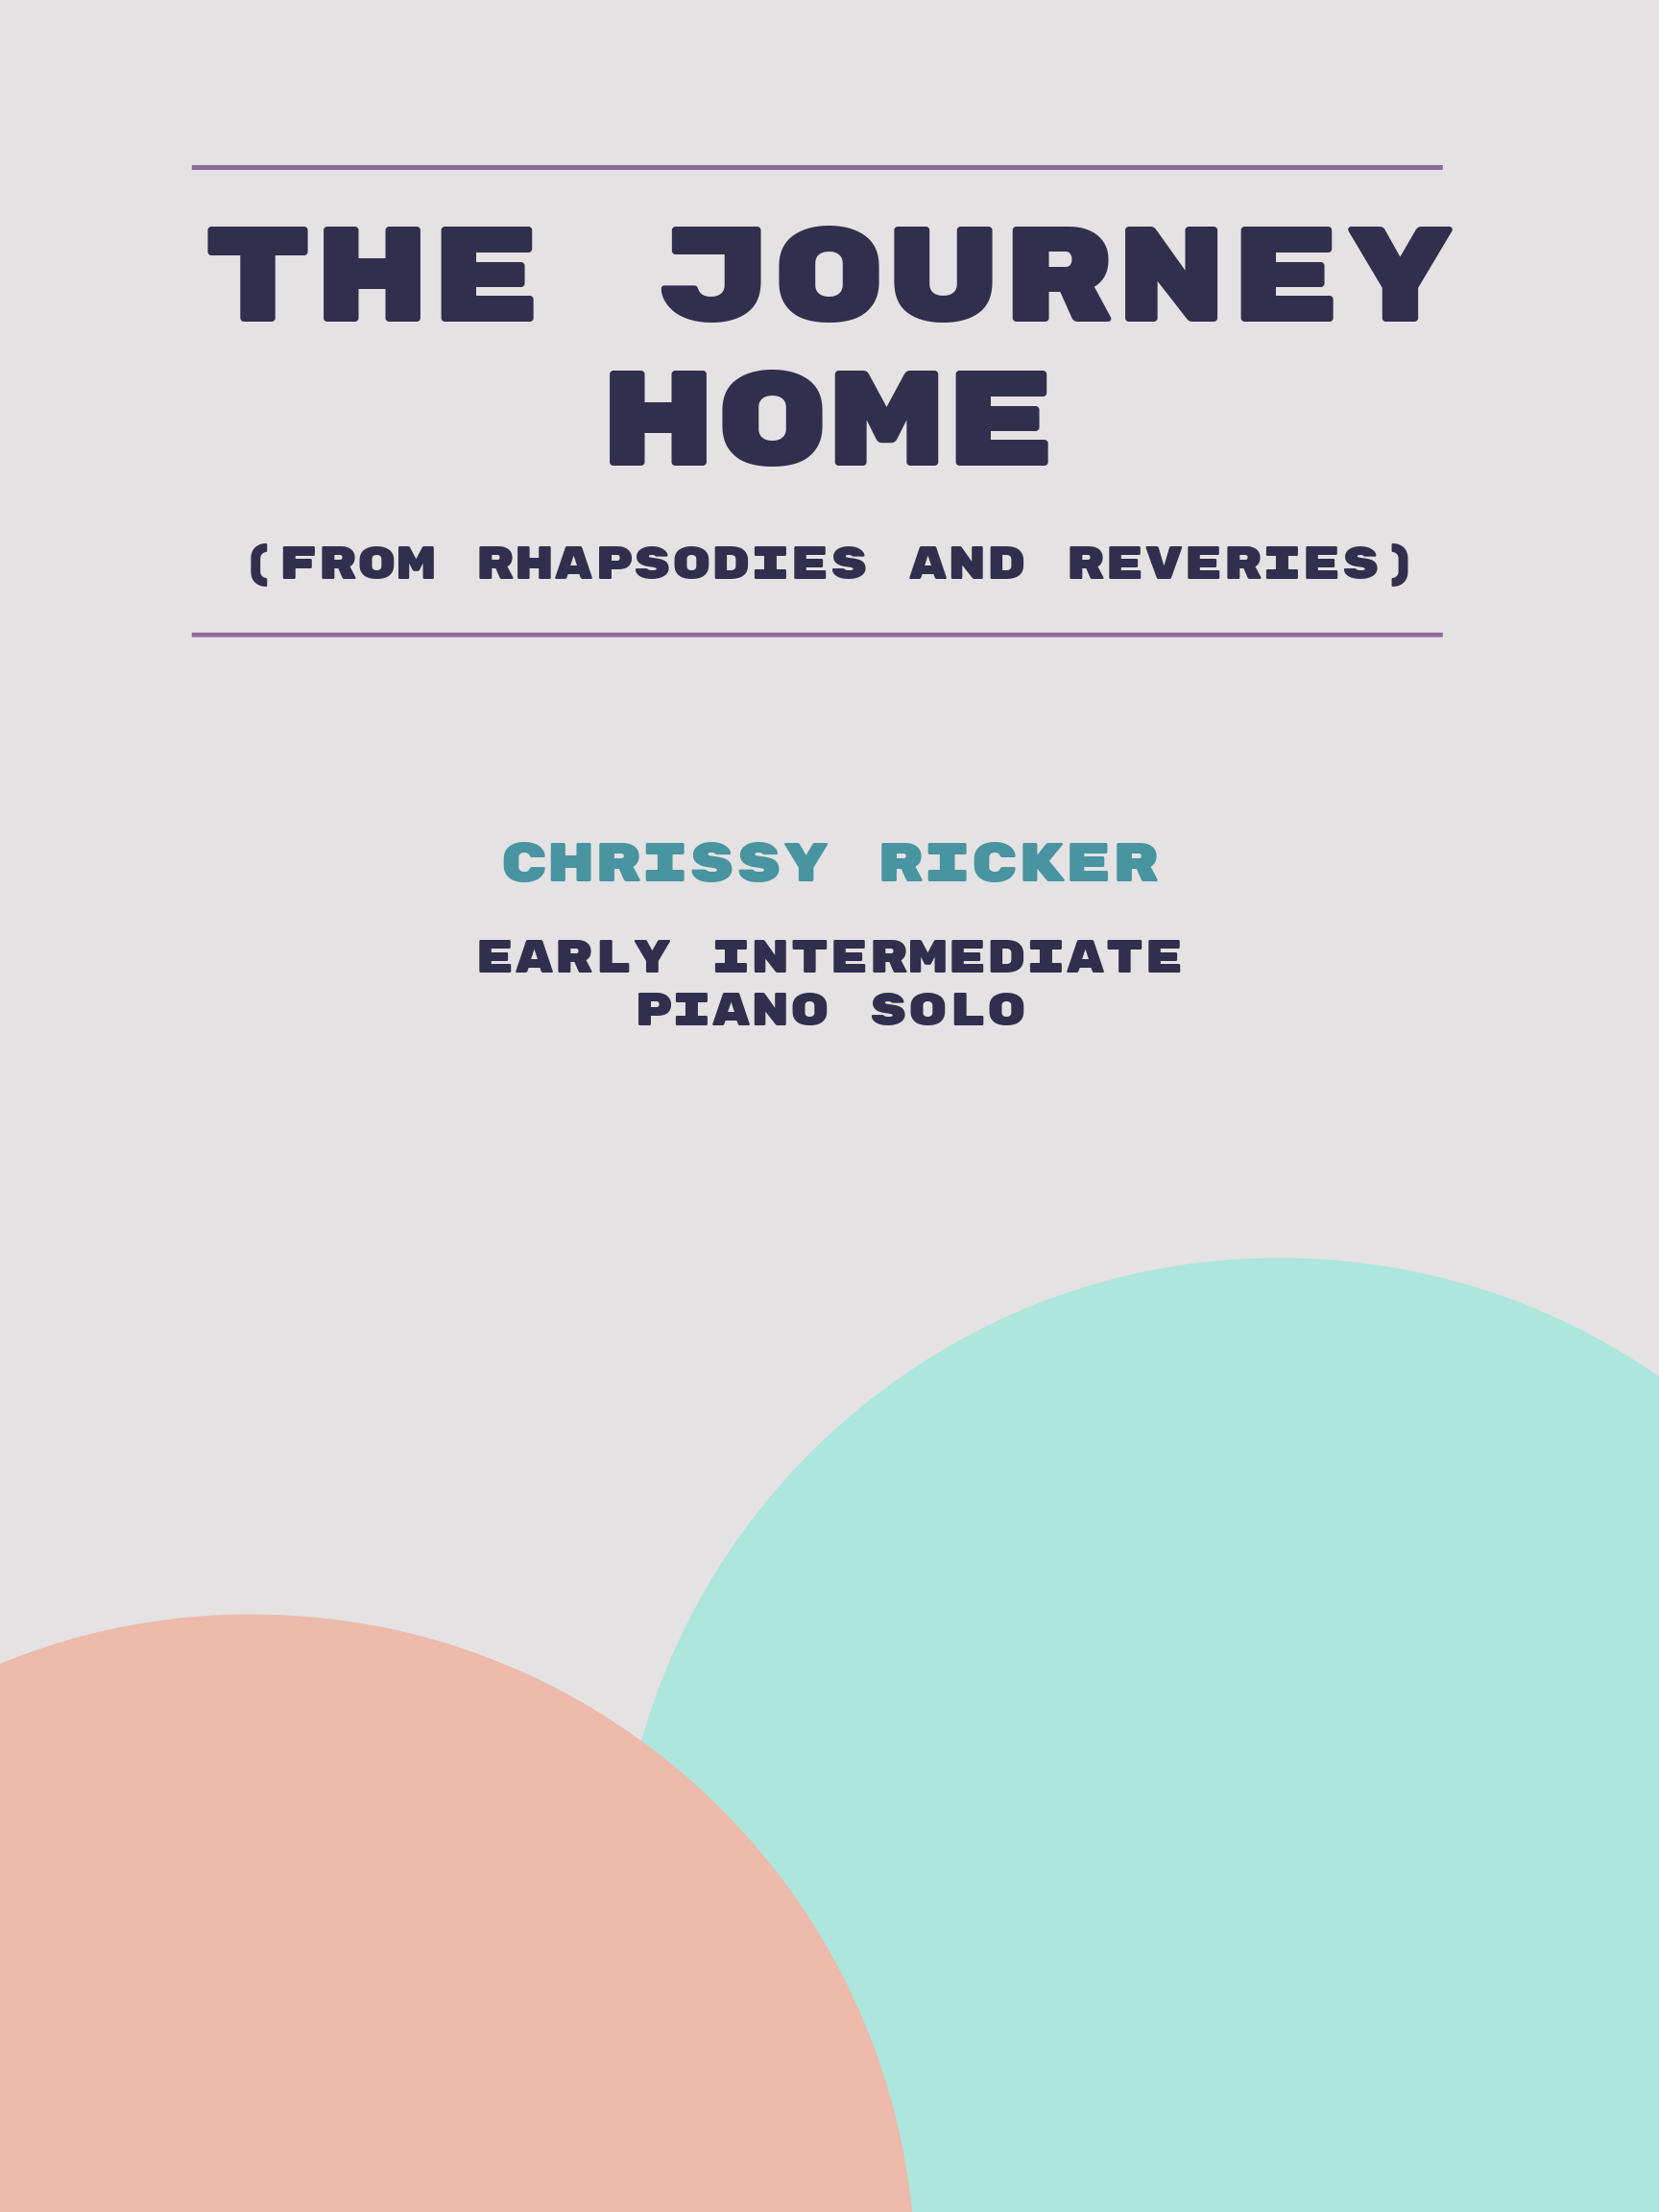 The Journey Home by Chrissy Ricker